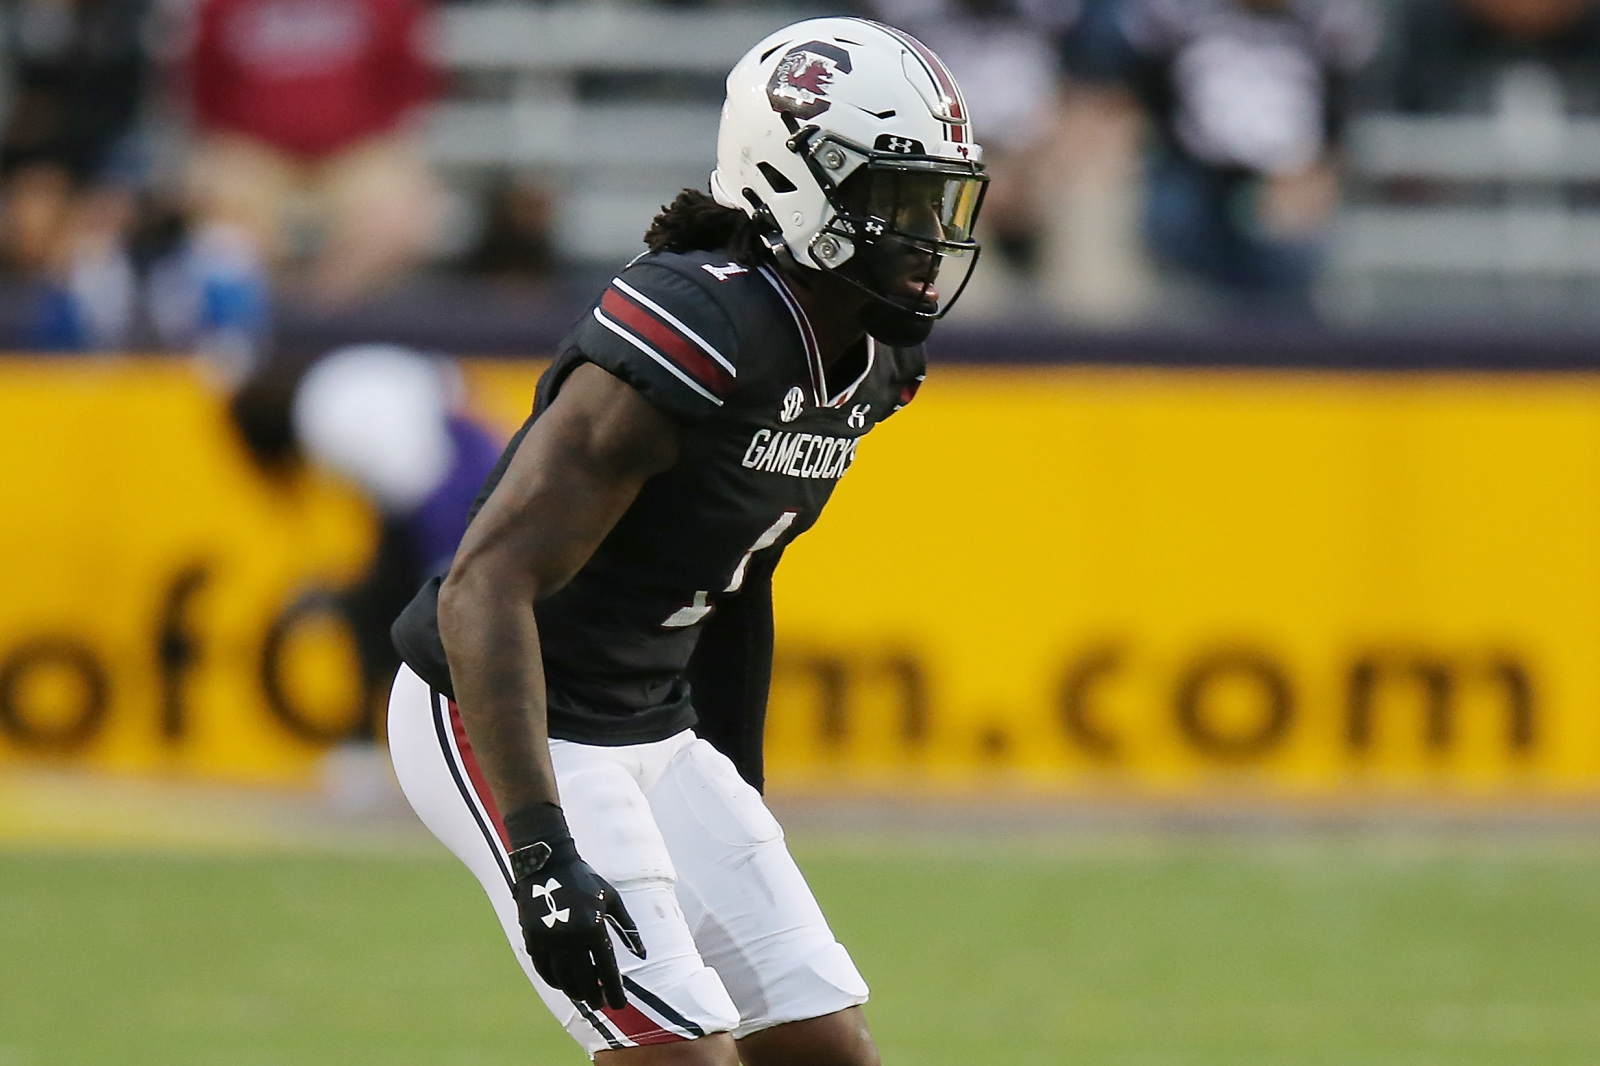 4 luxury prospects the Vikings could pick in the 2021 NFL Draft